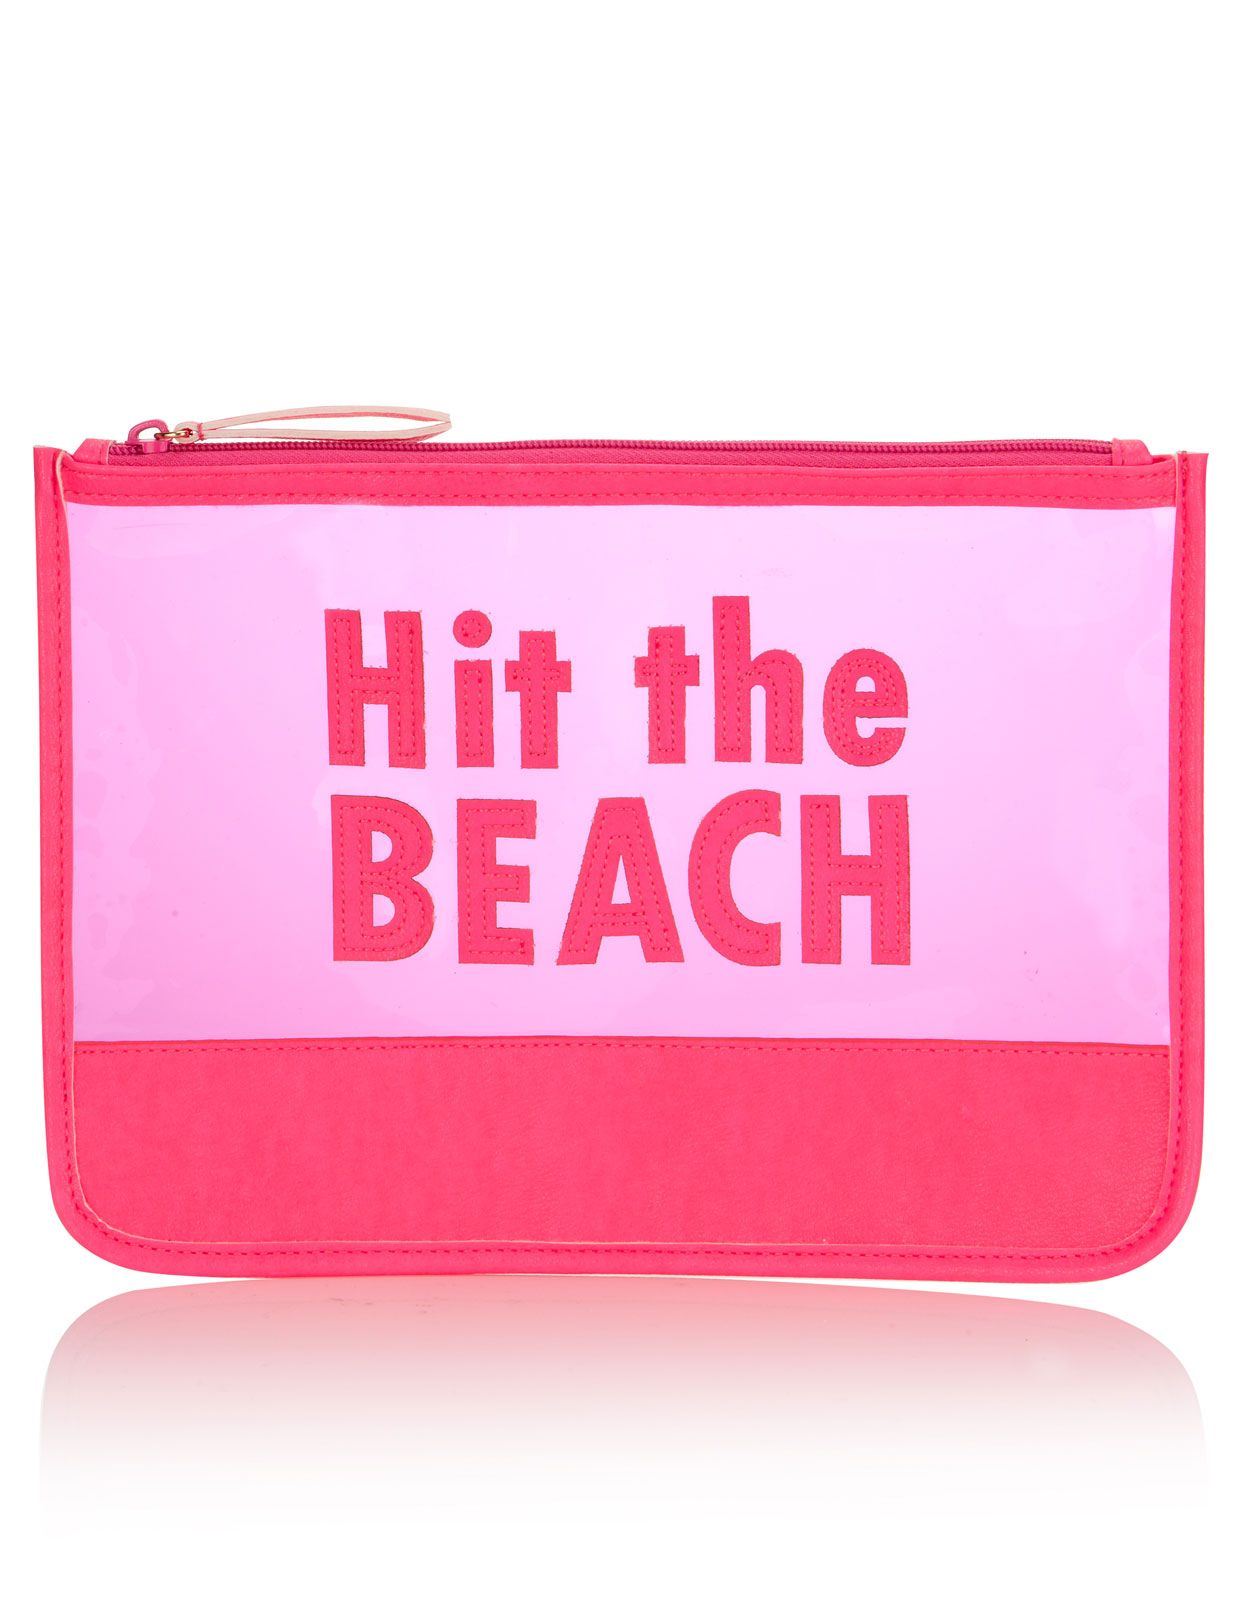 Pvc Bikini Bag Great For Carrying Your Poolside Essentials Or